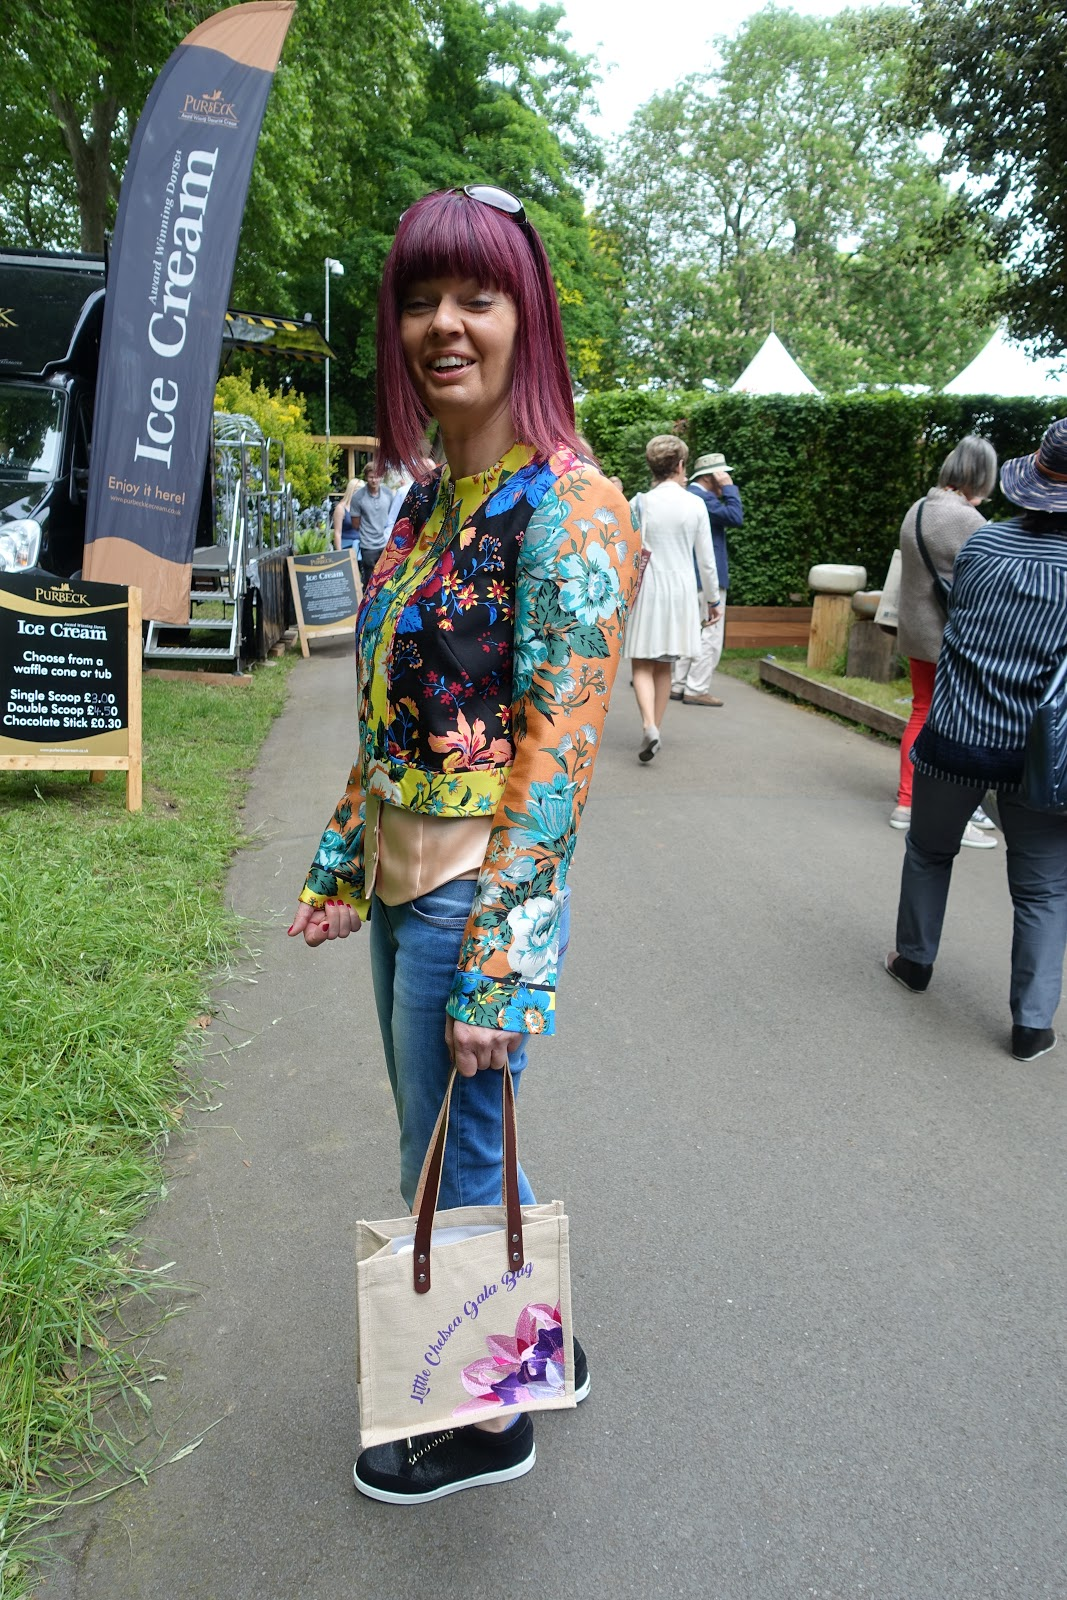 Colourful fashionista at Chelsea Flower Show 2017